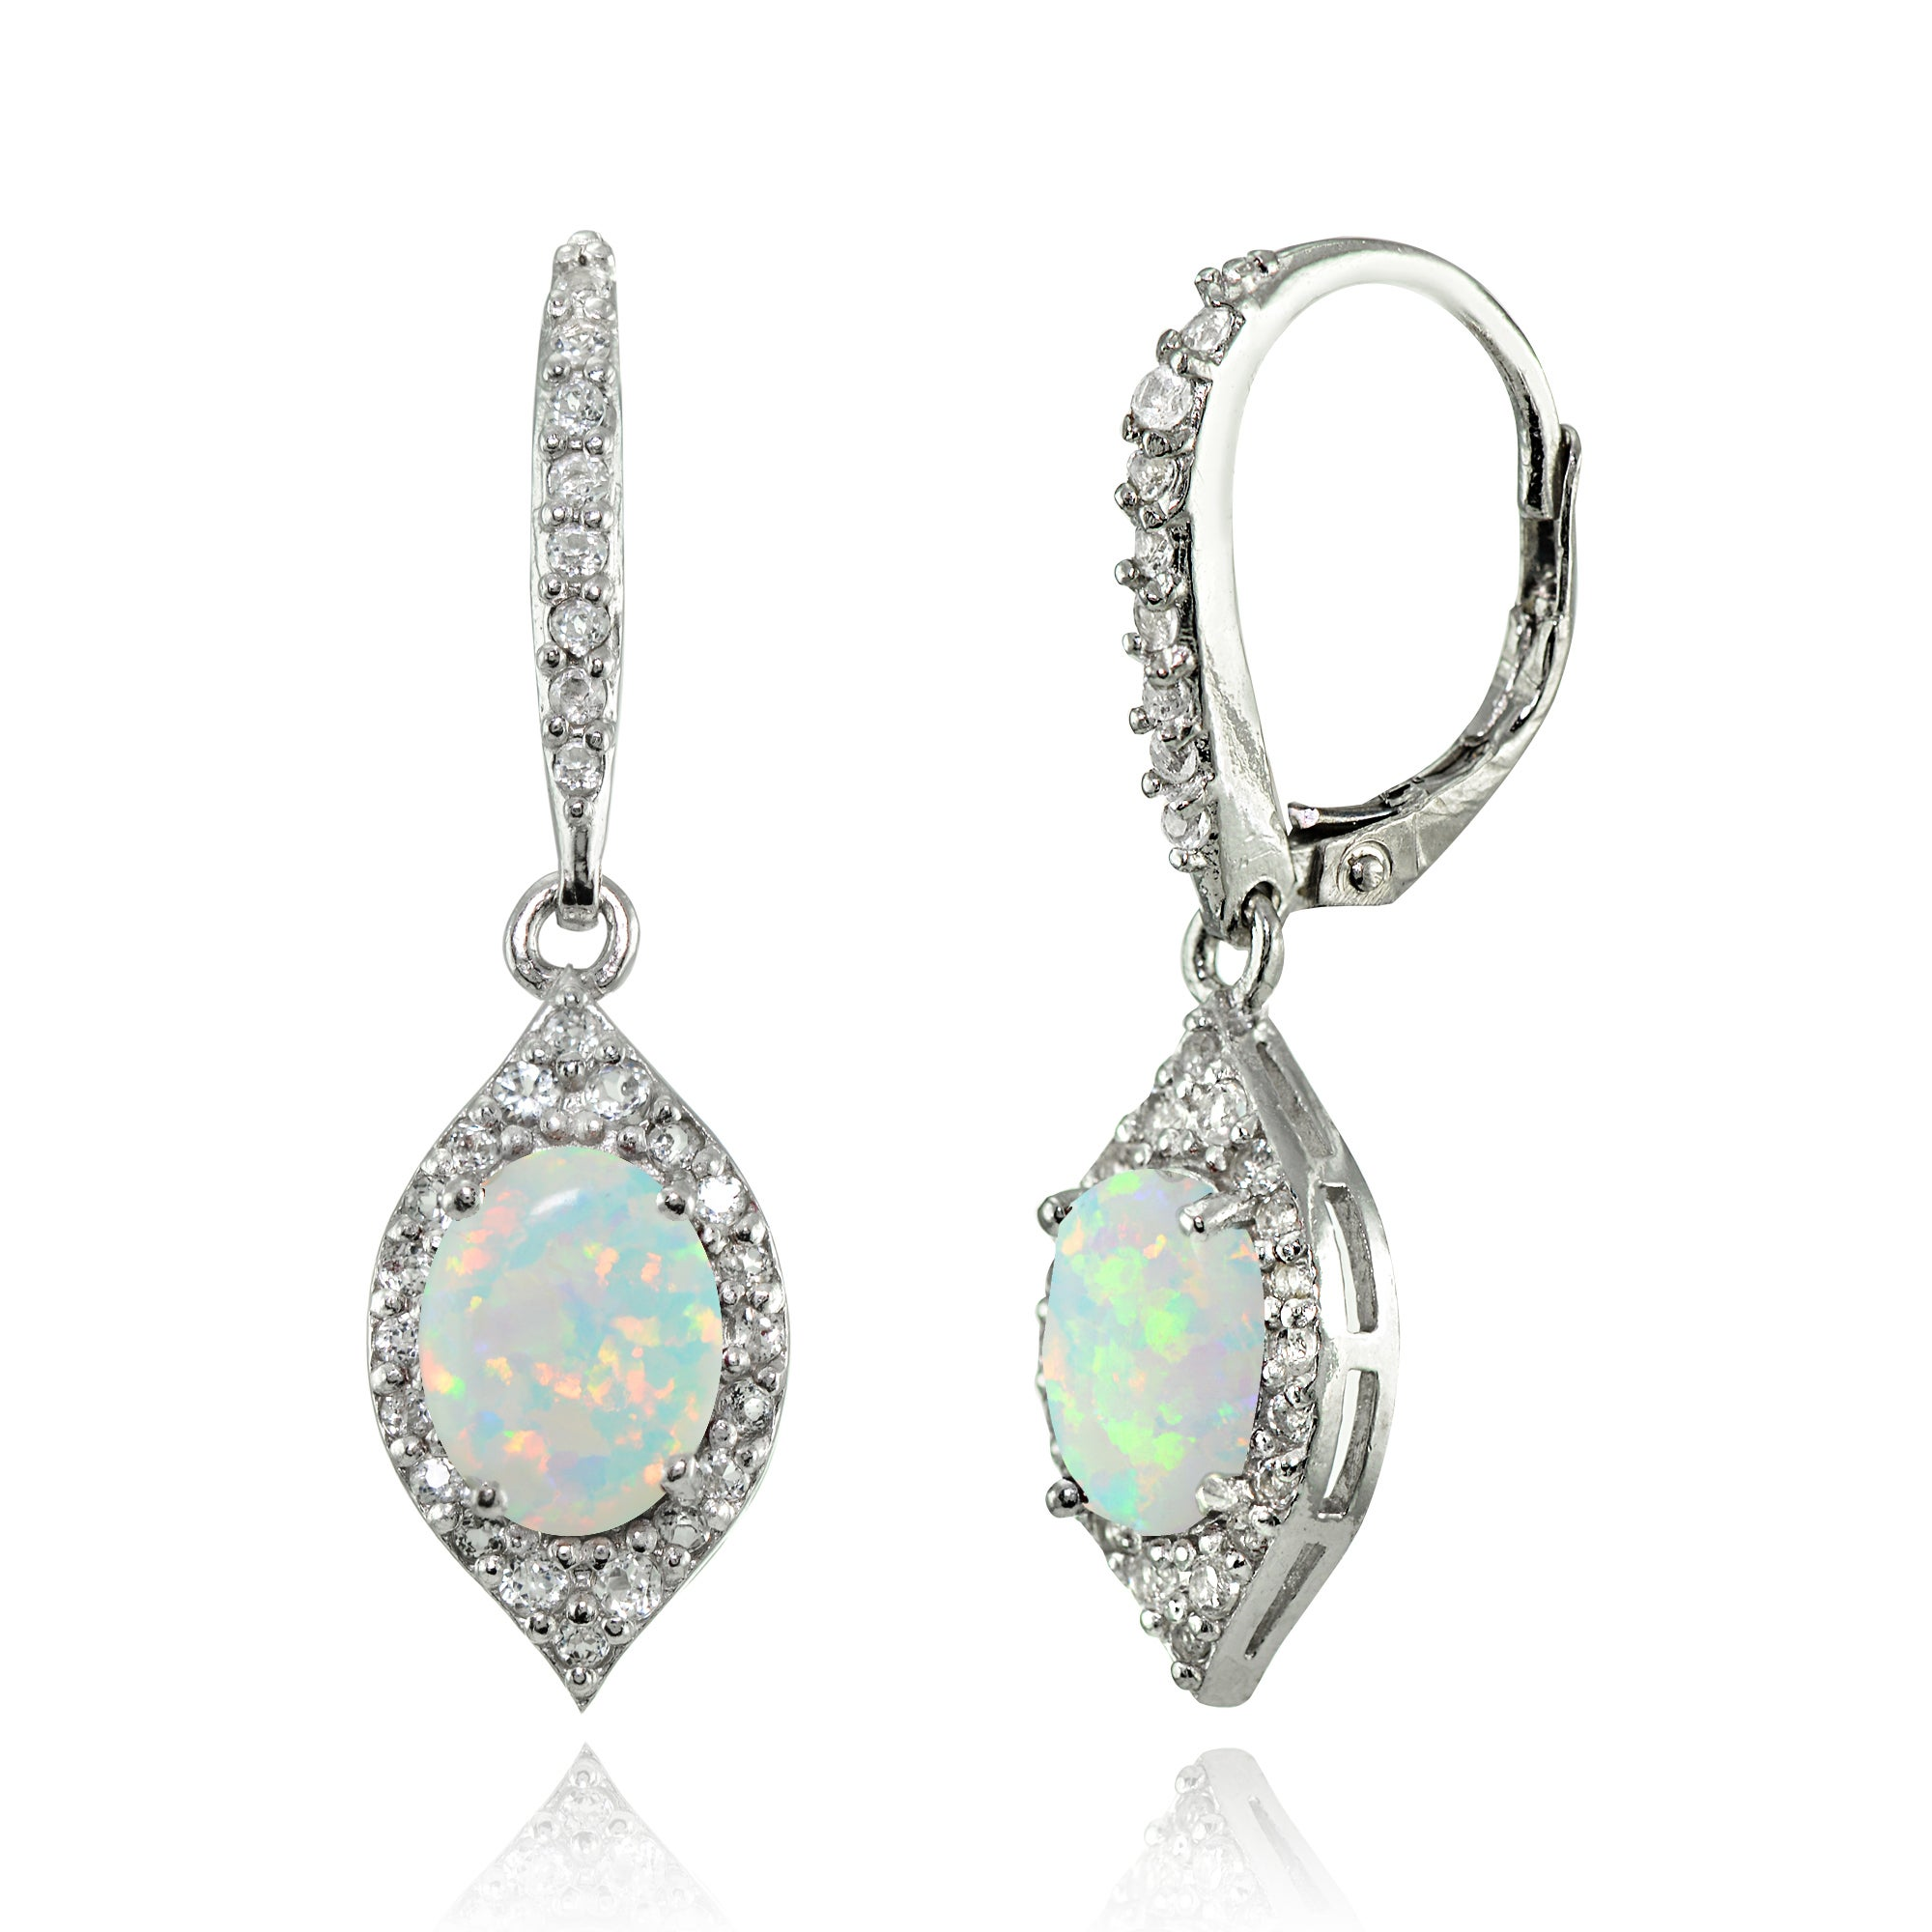 Silver Simulated Opal Oval Dangle Halo  Earrings with White Topaz Accents